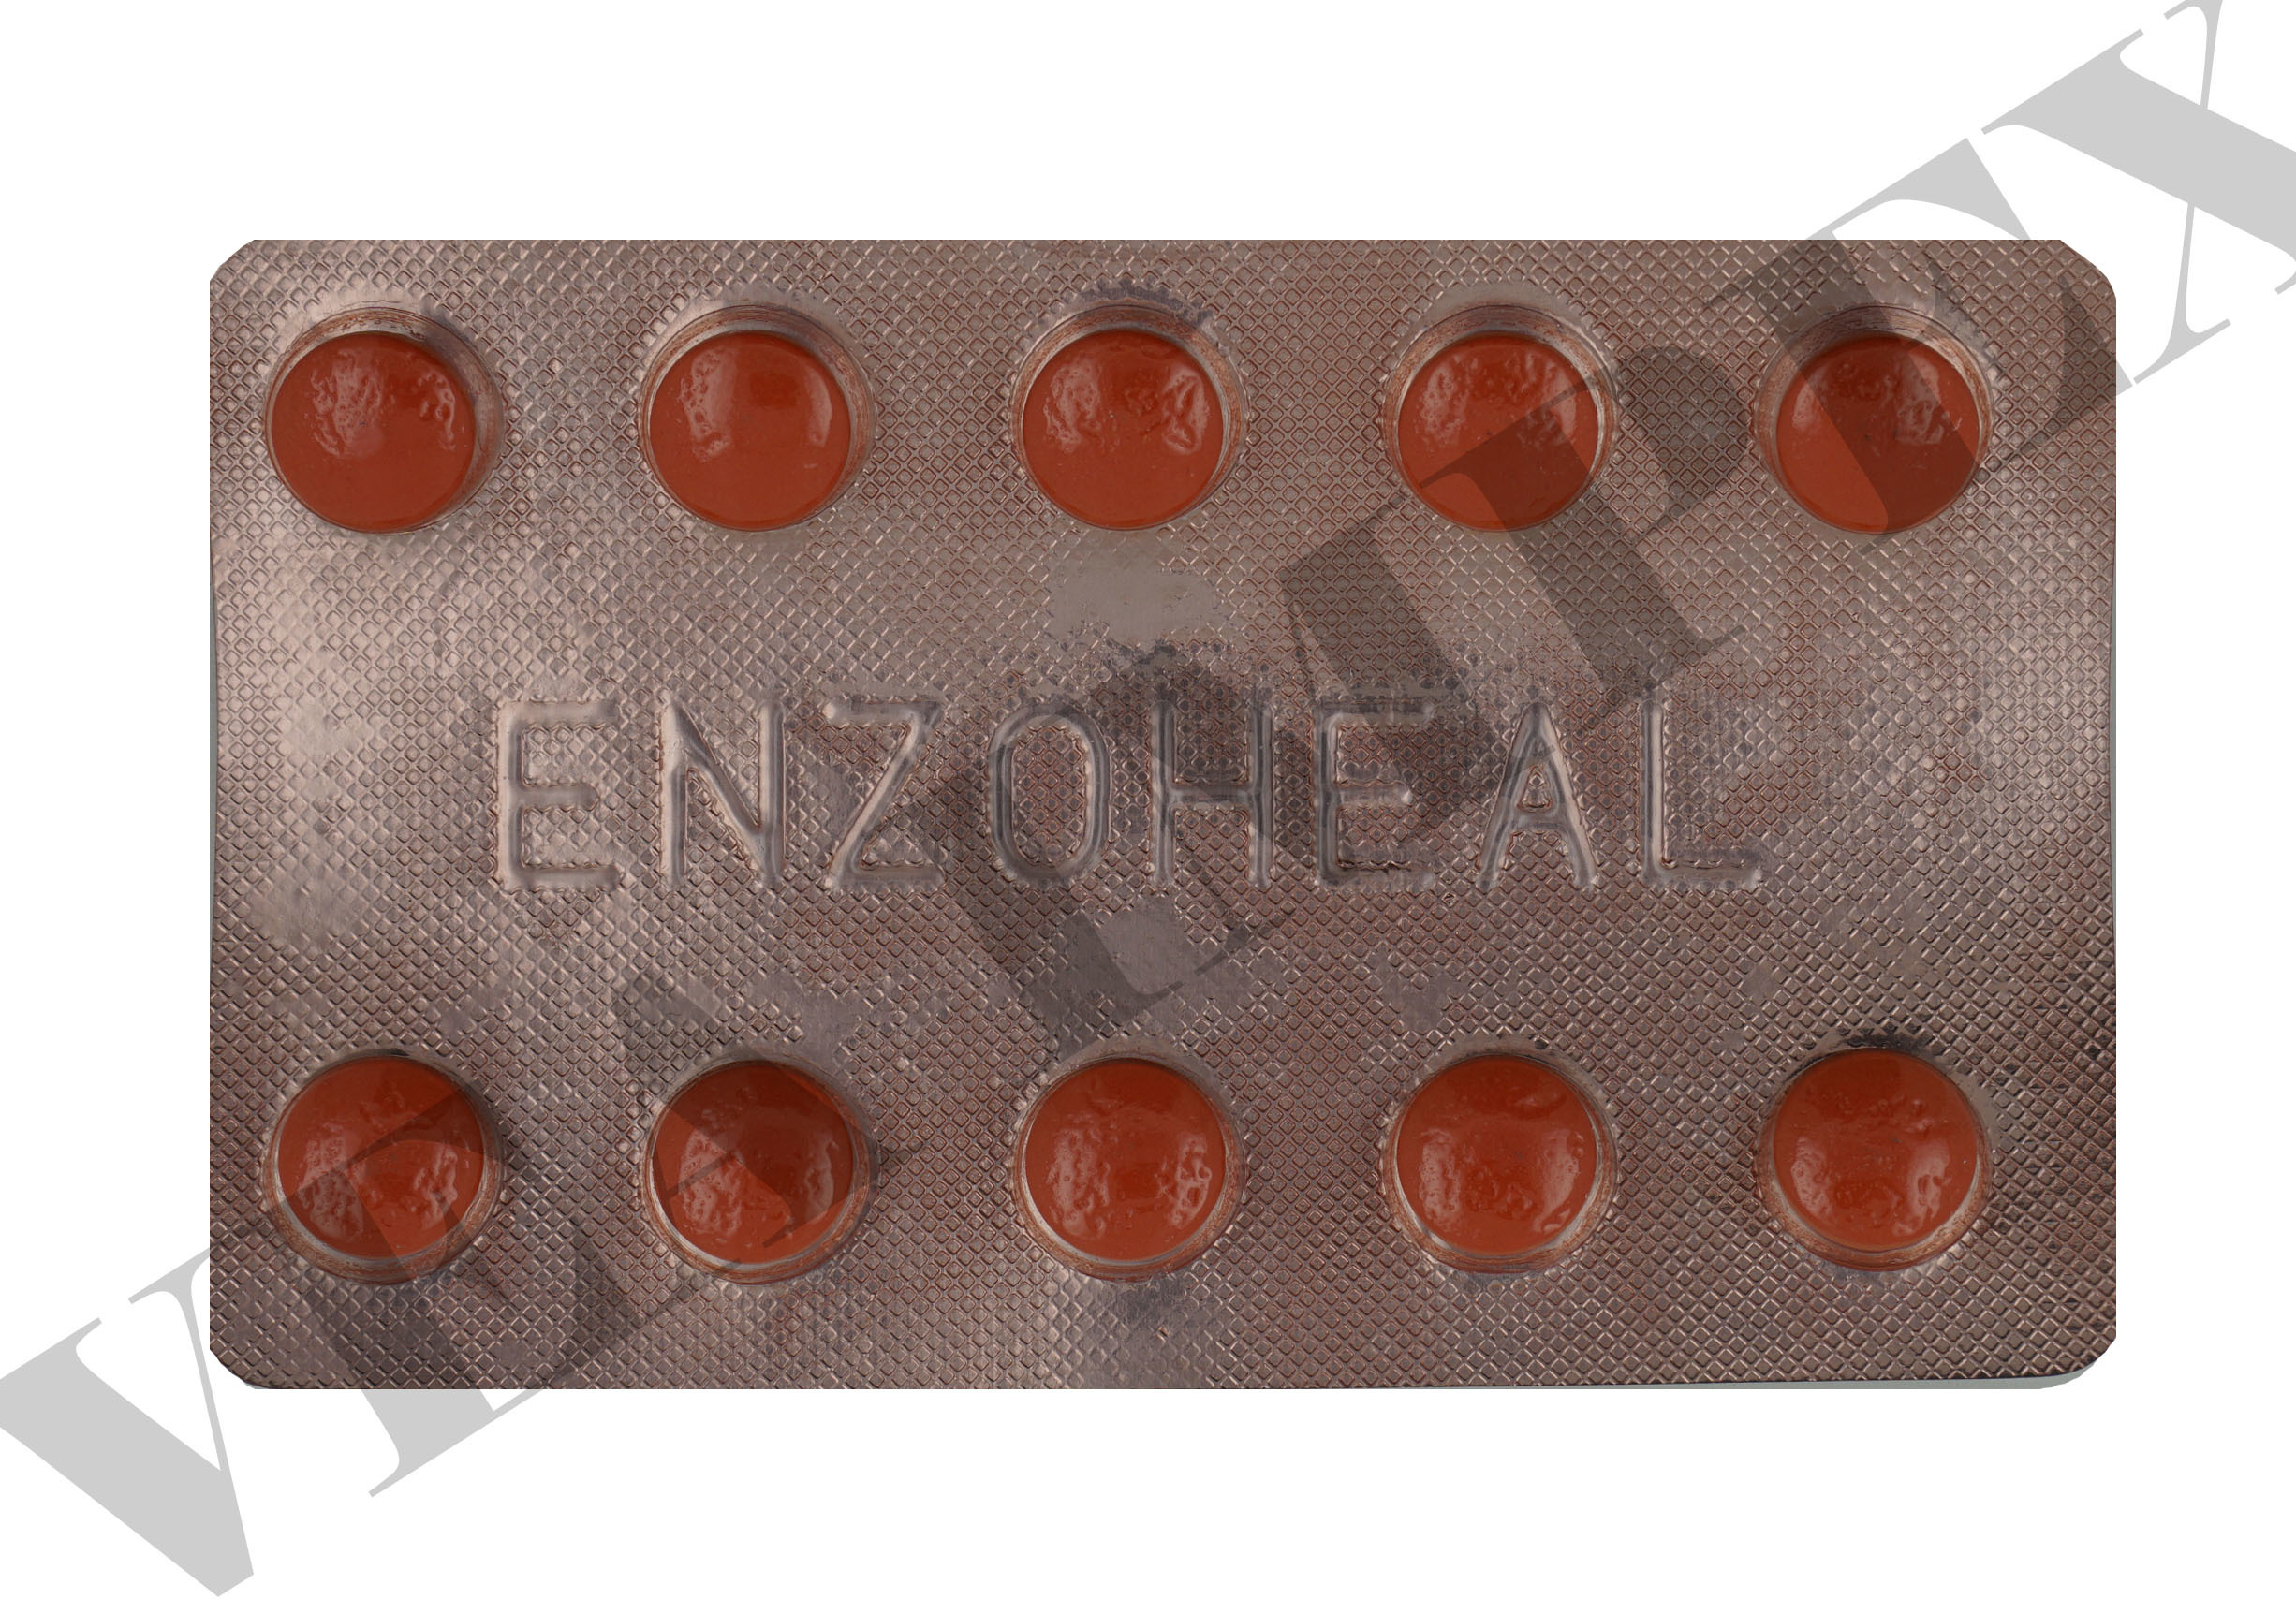 Enzoheal Tablets